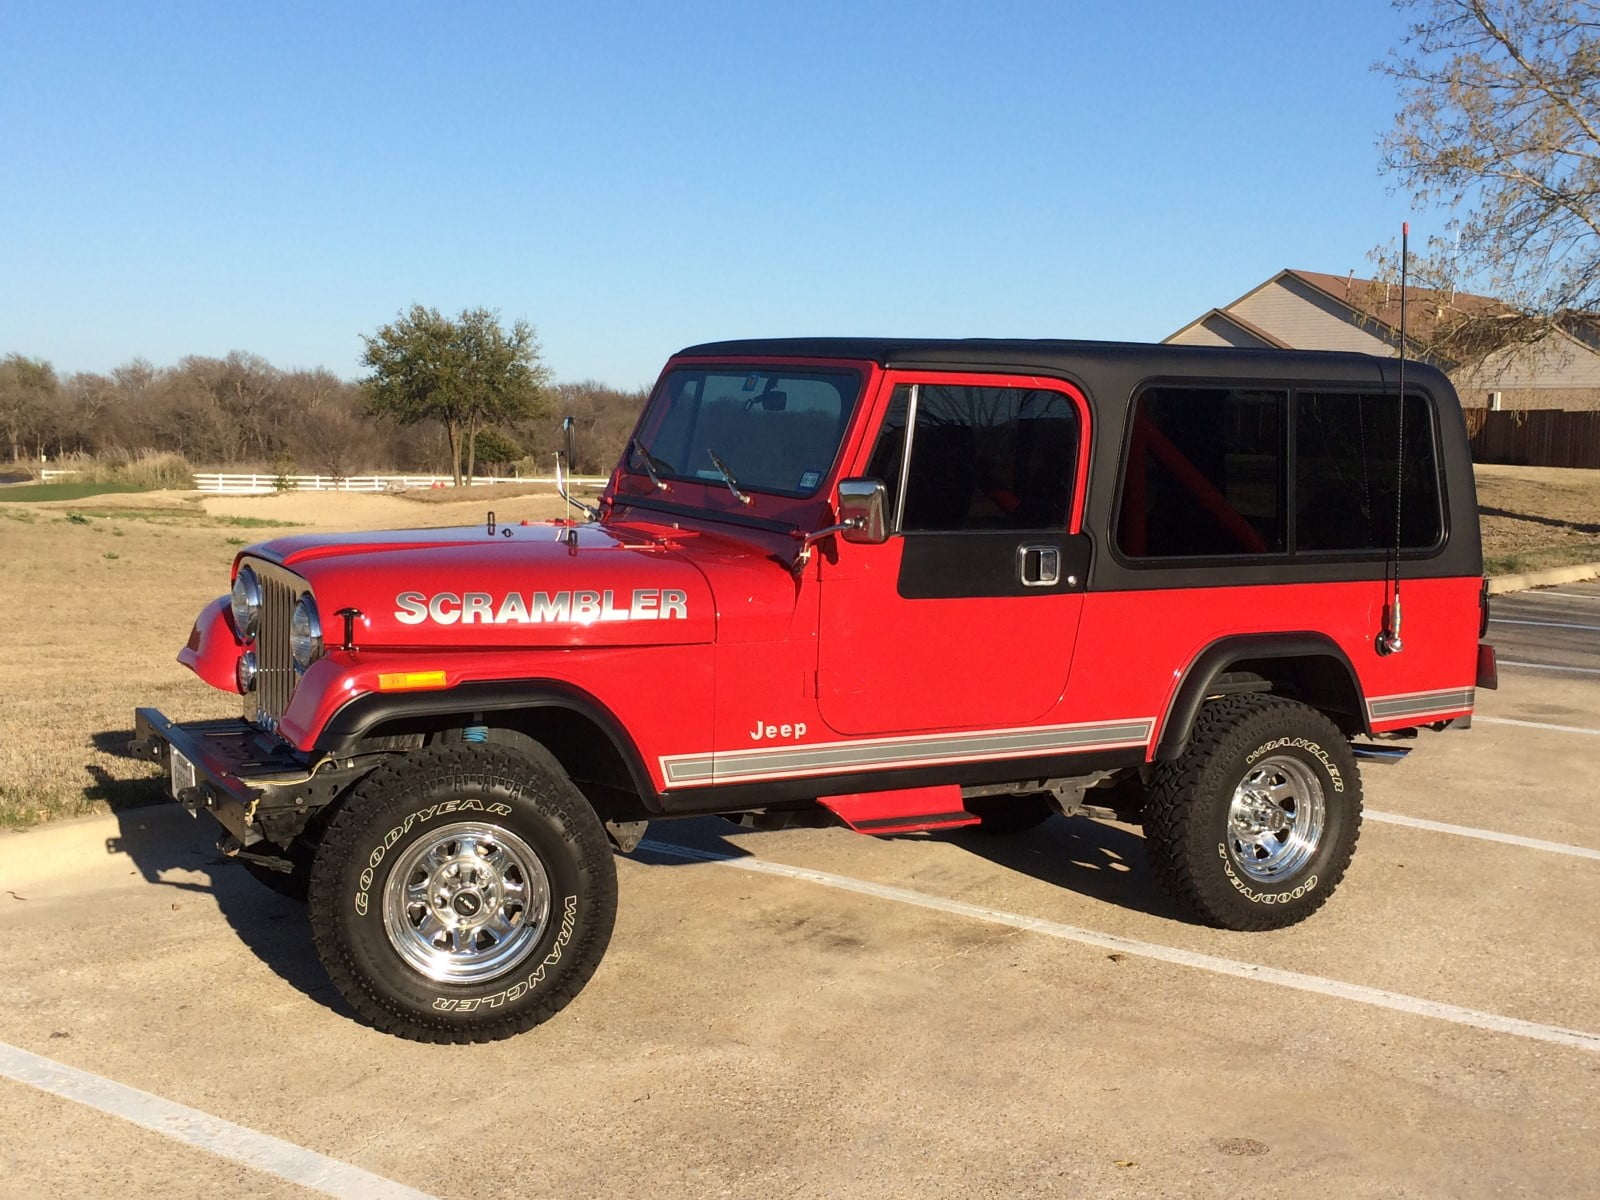 jeep cj7 with Jeep Cj8 1 Pc on Mustang Rear Gear Ratios Overview additionally 2005 Jeep Wrangler Pictures C2390 moreover Suzuki Samurai 2 Pc moreover Jeep Off Roading 101 Water And Mud furthermore Jeep Cj8 1 Pc.